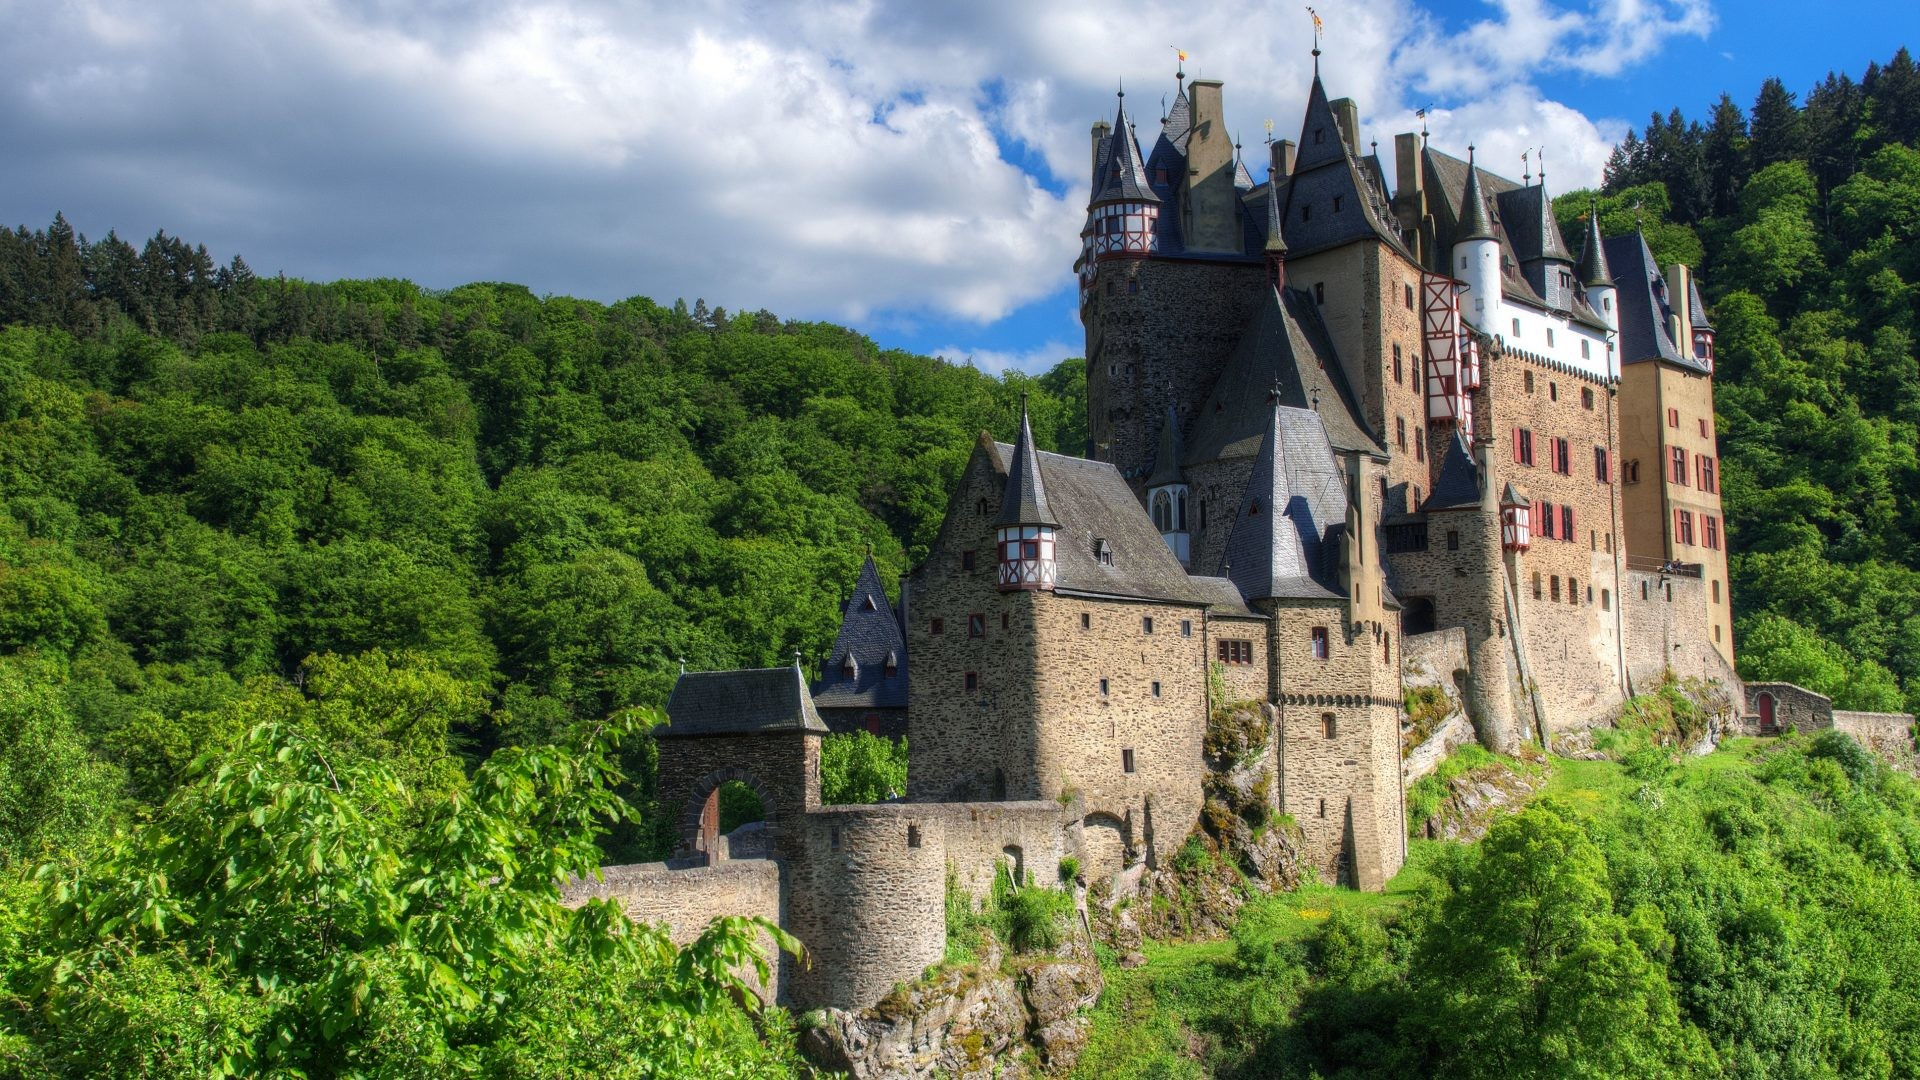 1920x1080 Medieval - Castle Eltz Germany Hills Forest Clouds Building Nature Pictures  for HD 16:9